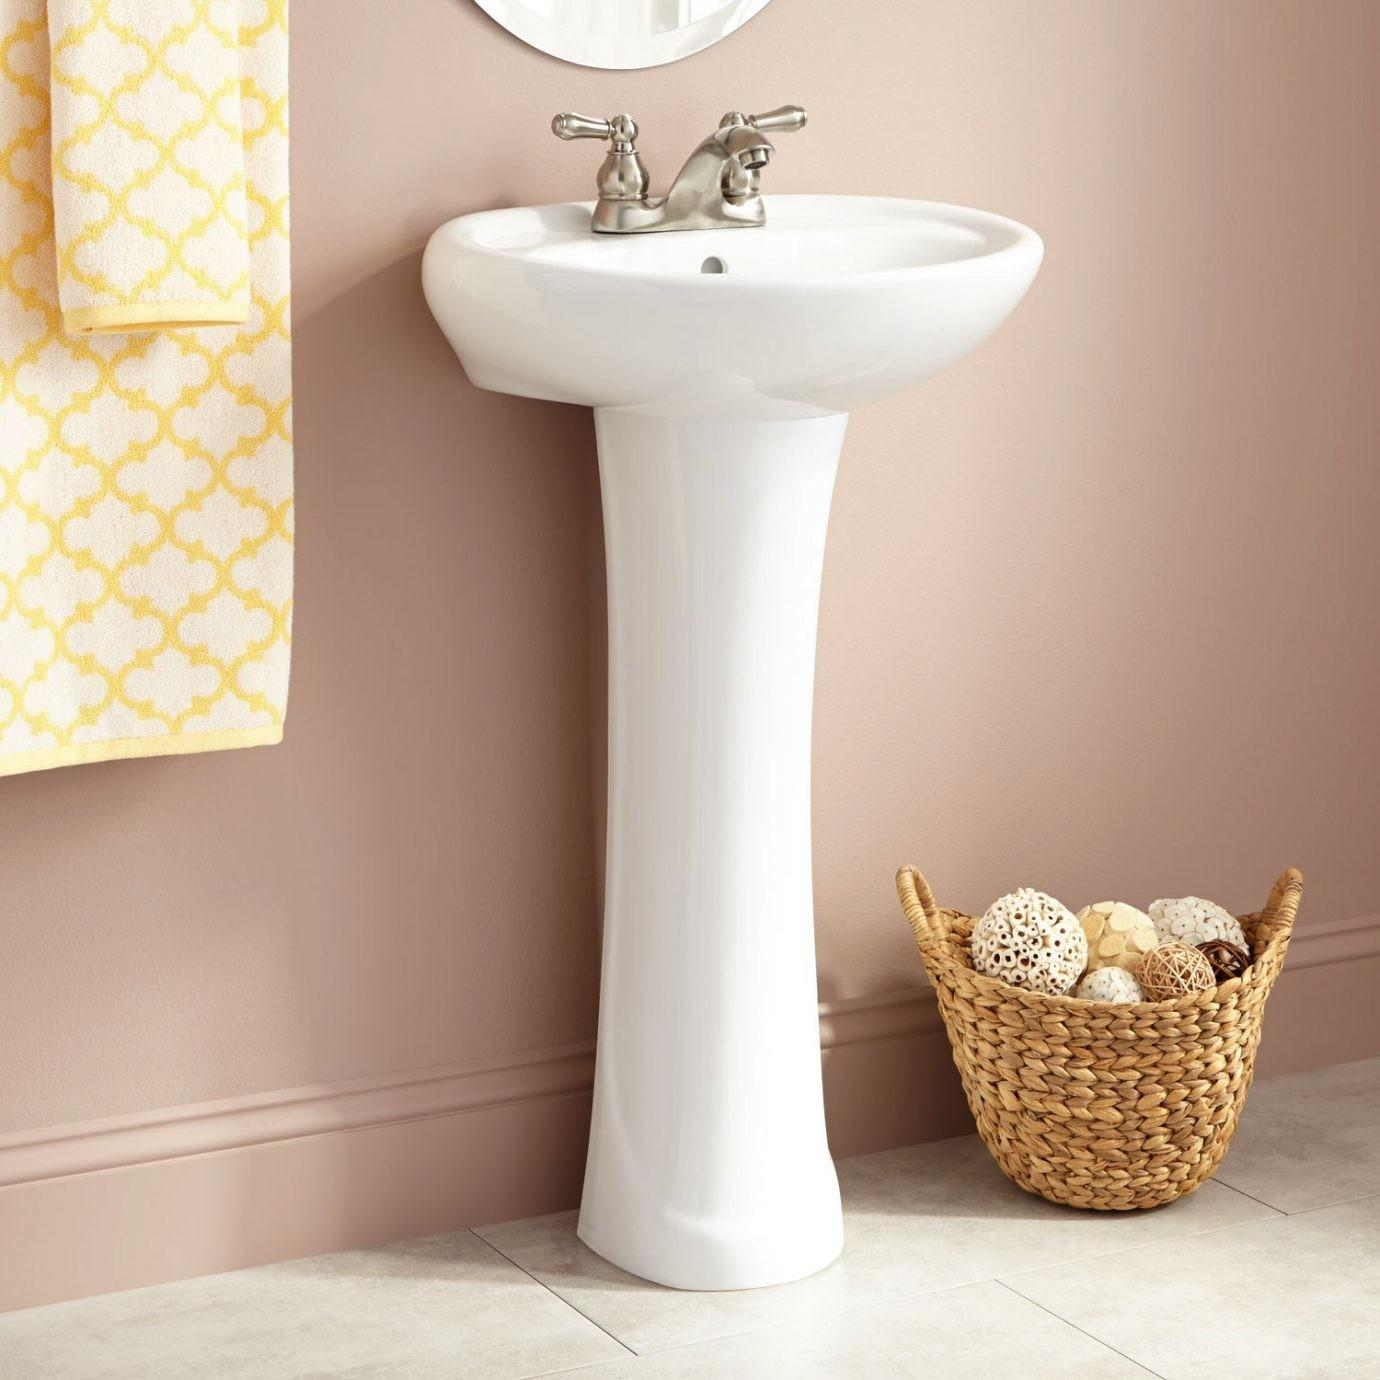 Gretchen Porcelain Pedestal Sinksimplicity Its Best